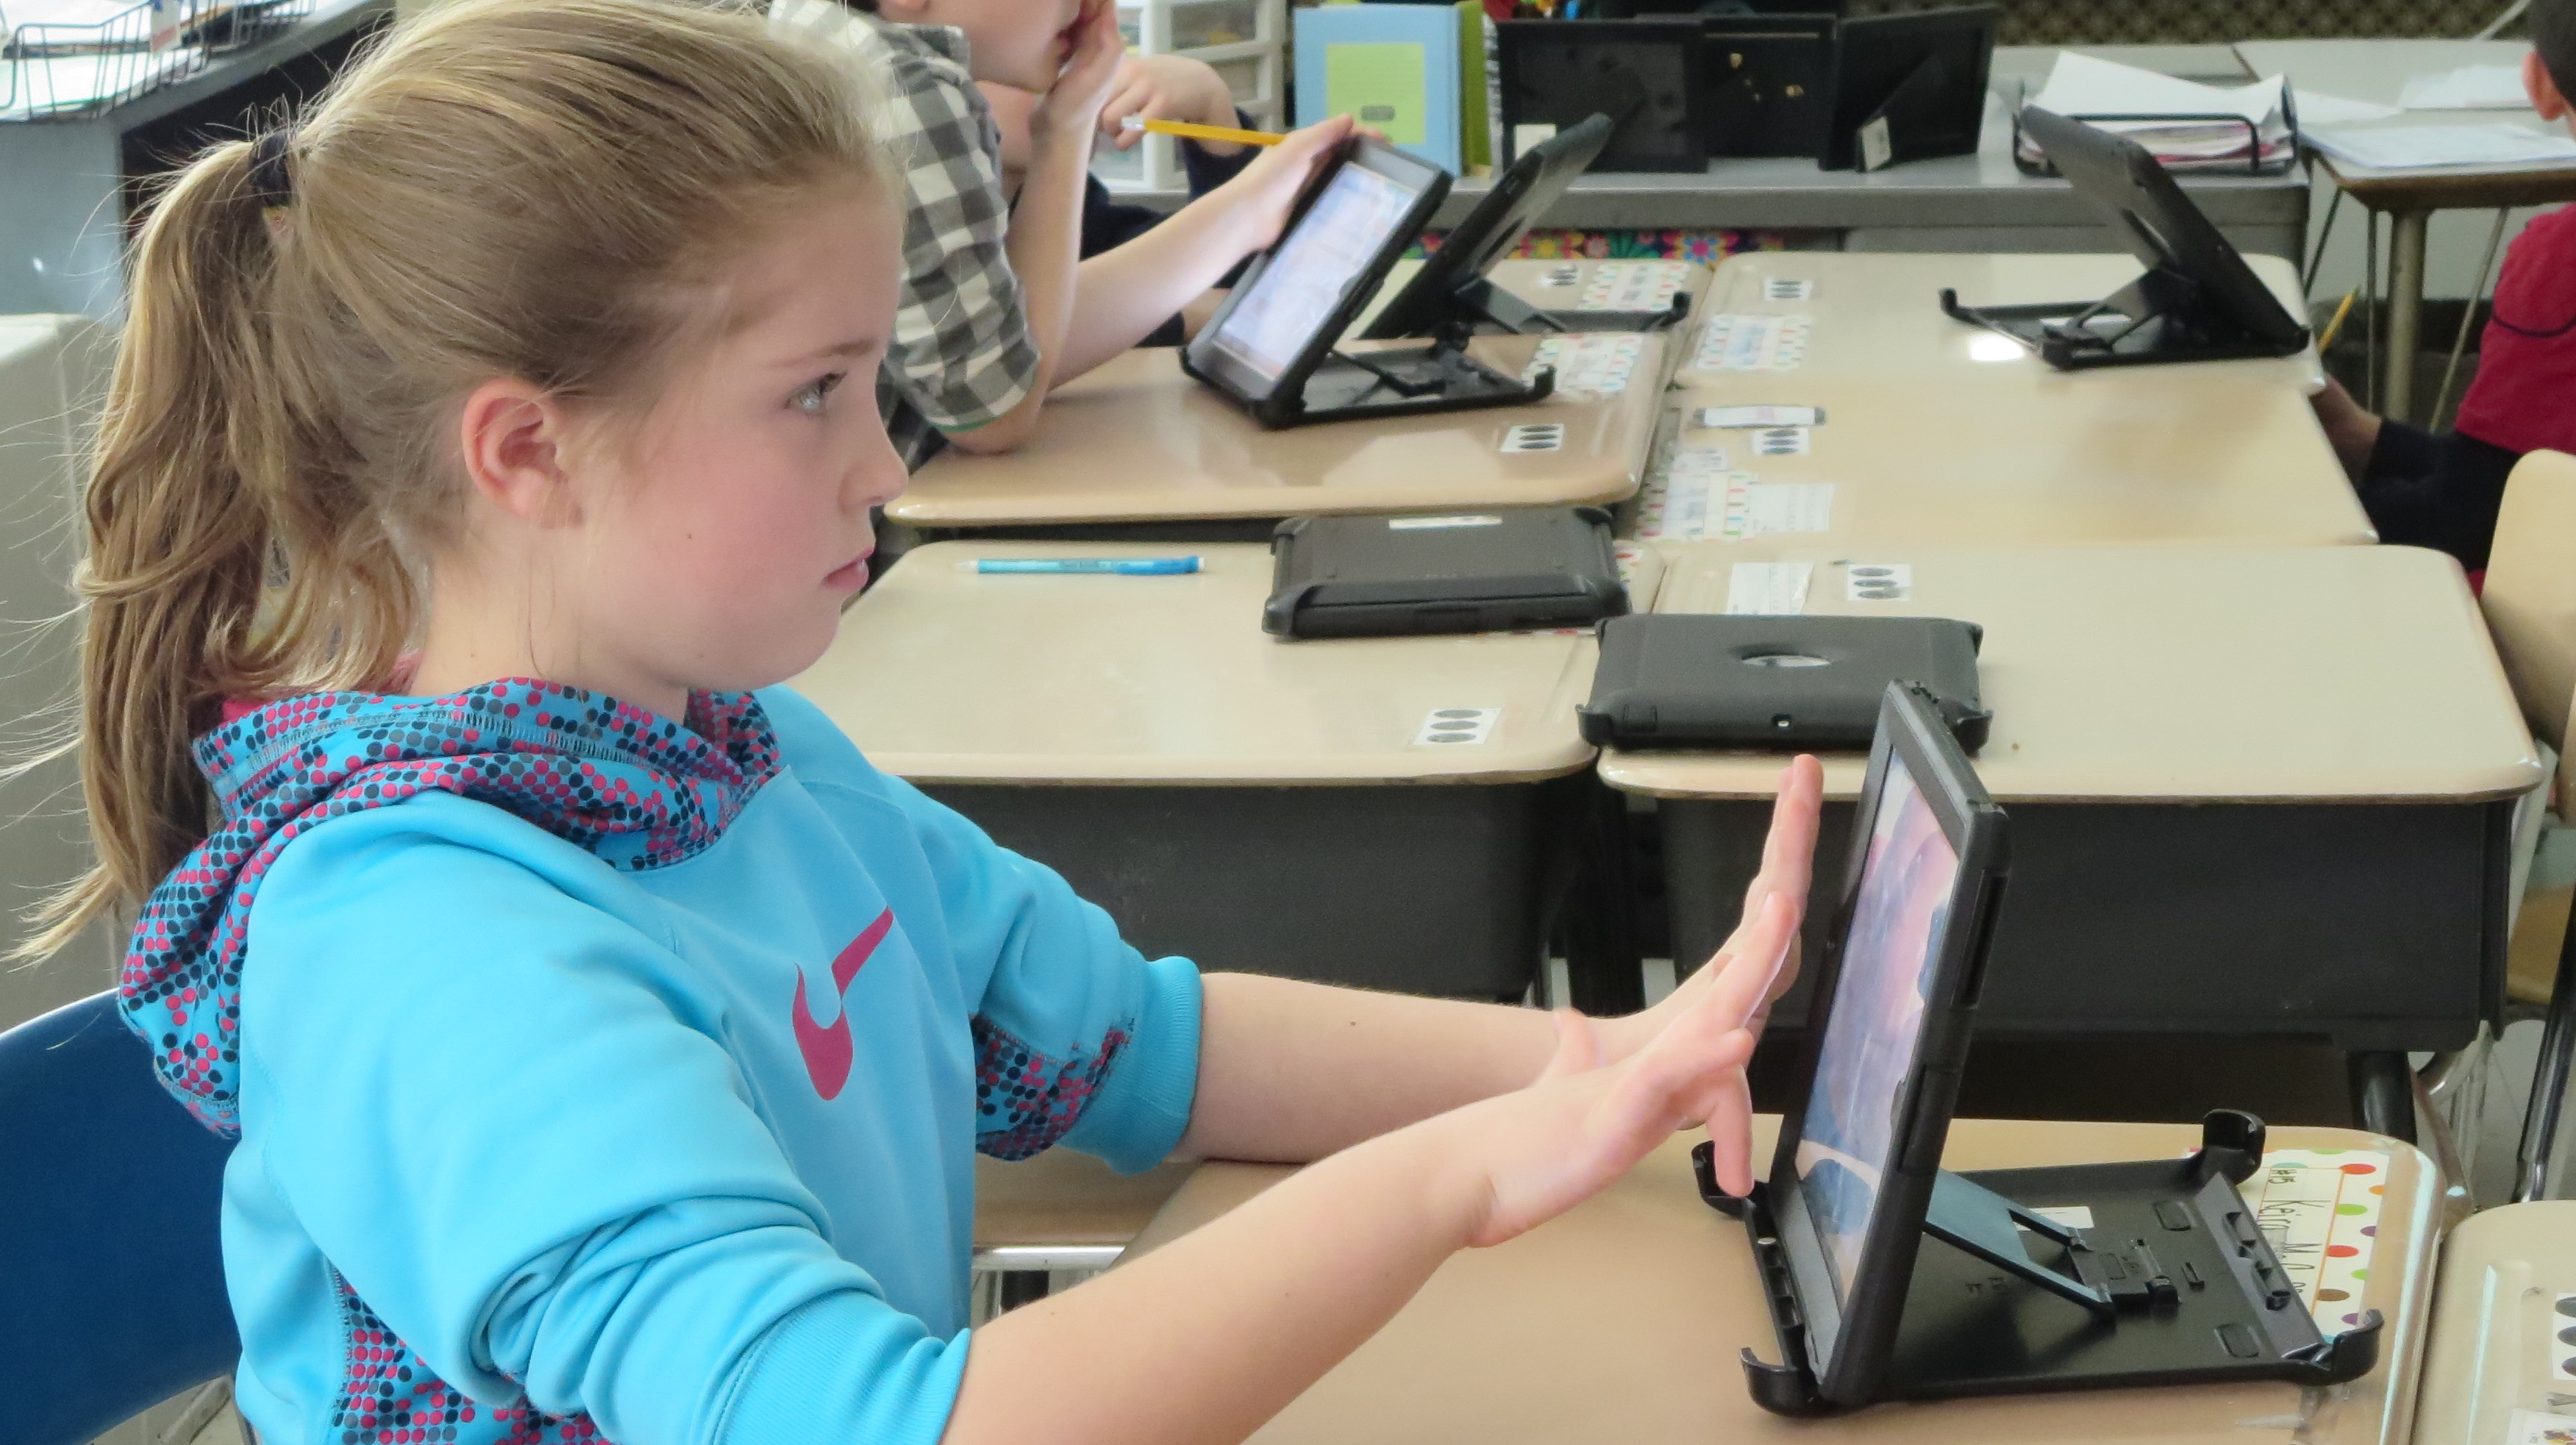 These third graders spend 75% of their day on iPads, and their teacher doesn't mind a bit